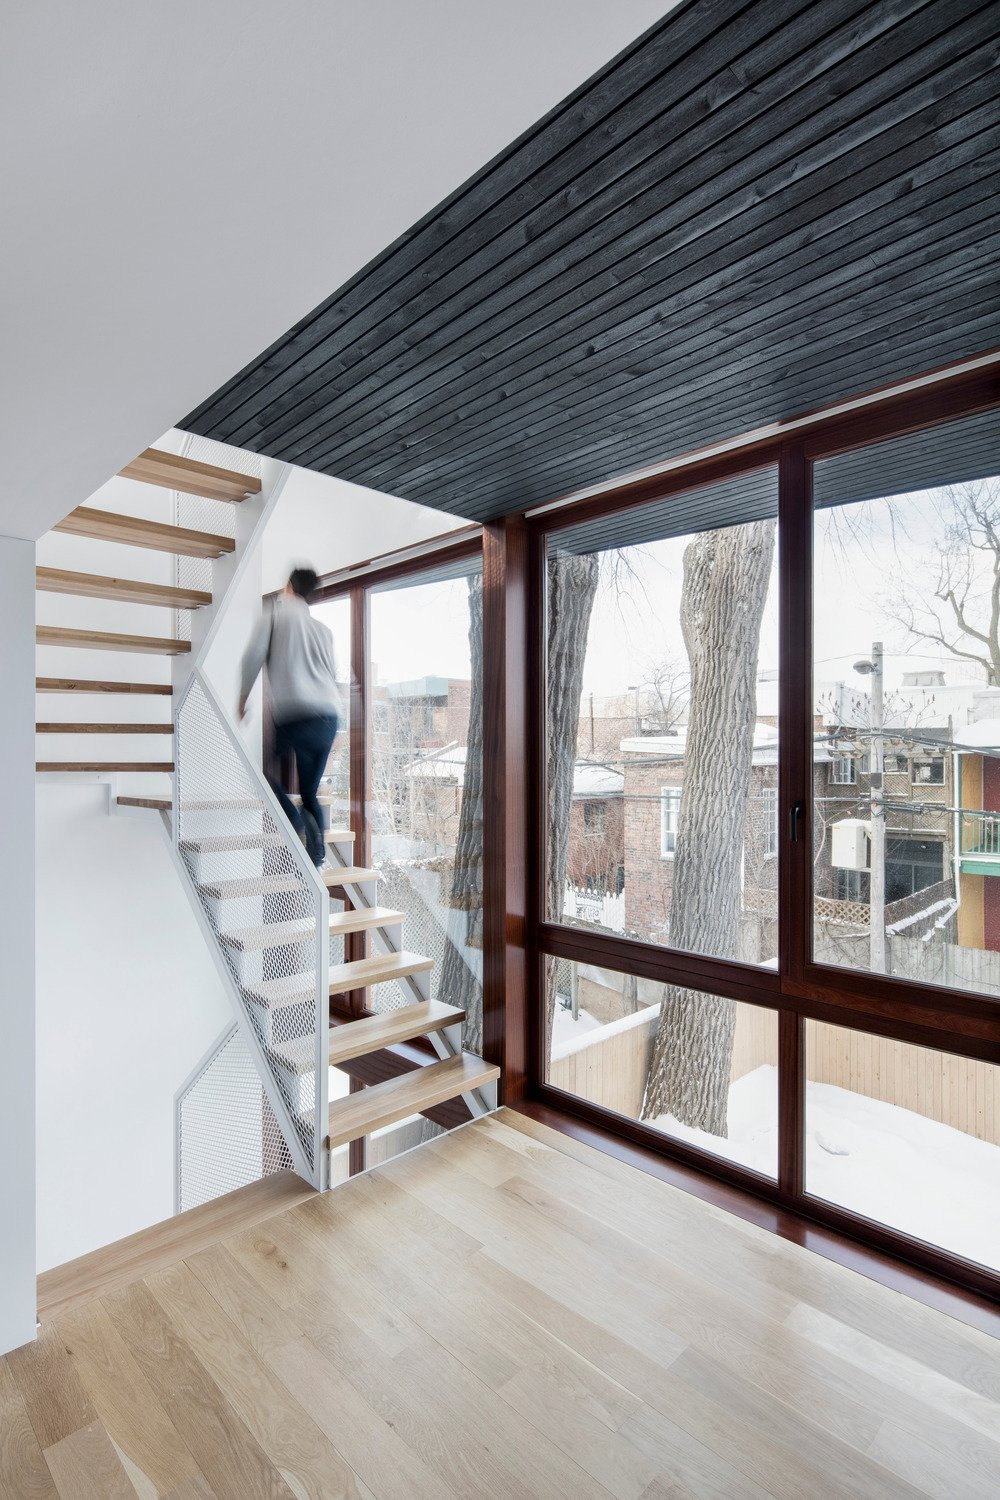 Staircase, Wood Tread, and Metal Railing The addition creates a narrow intermediary space between the yard and existing home. This sliver contains a staircase and two new sun rooms.  Photo 3 of 5 in A City Home Grows Without Gobbling Up its Garden